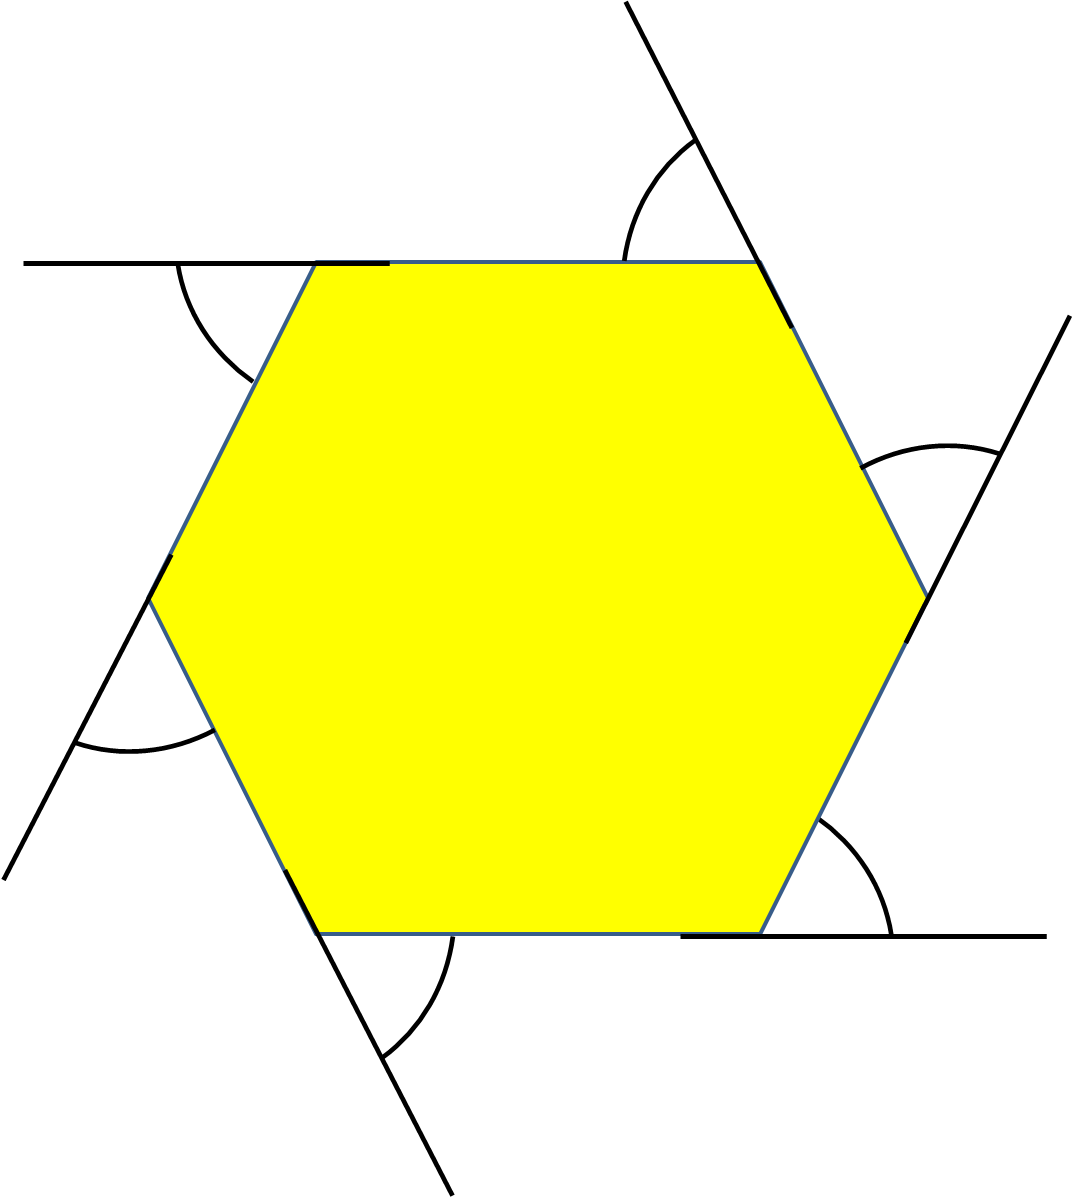 Exterior Angles Of Regular Polygons